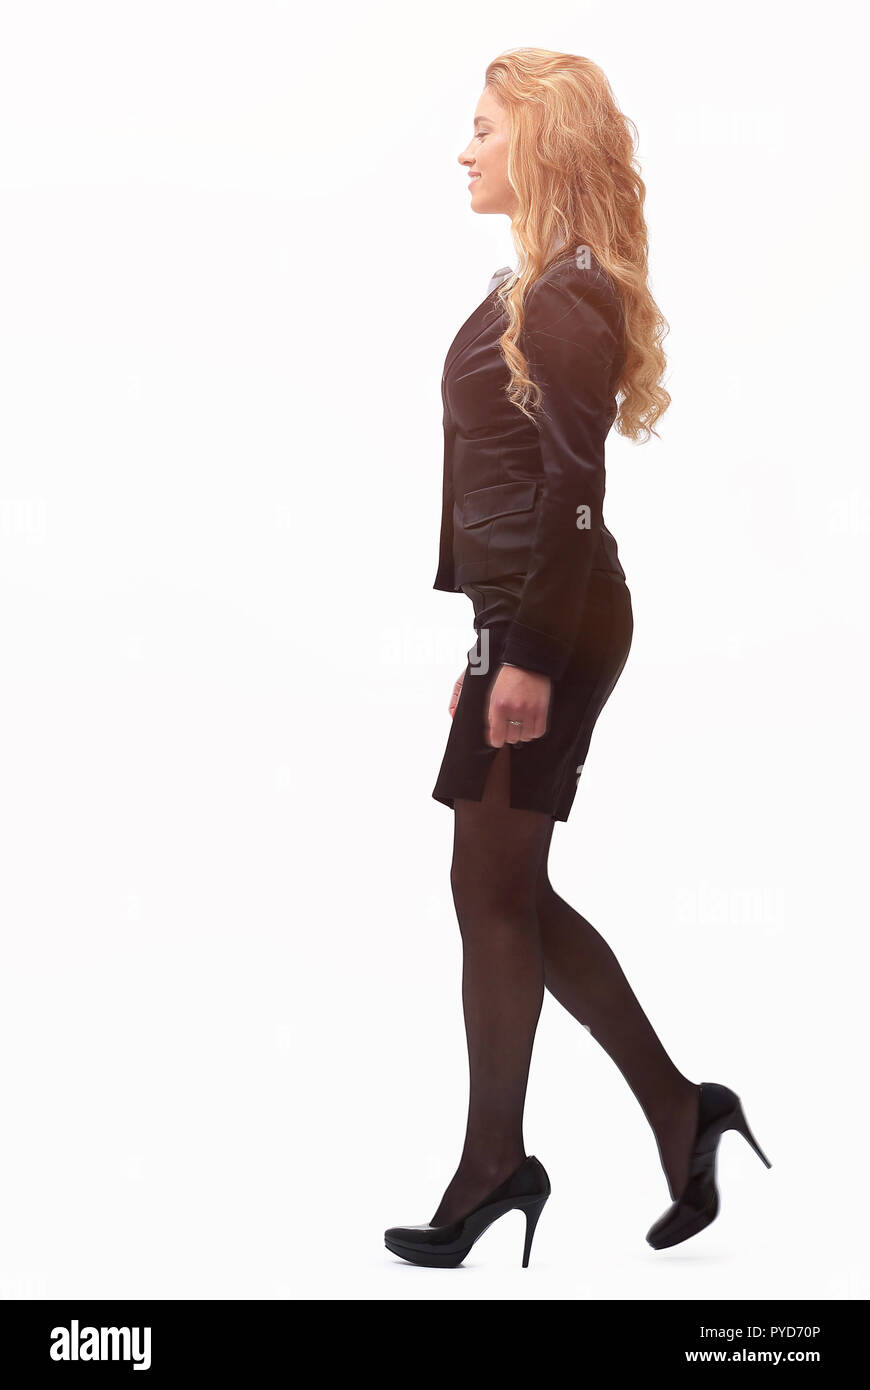 side view.business woman strongly going forward. - Stock Image